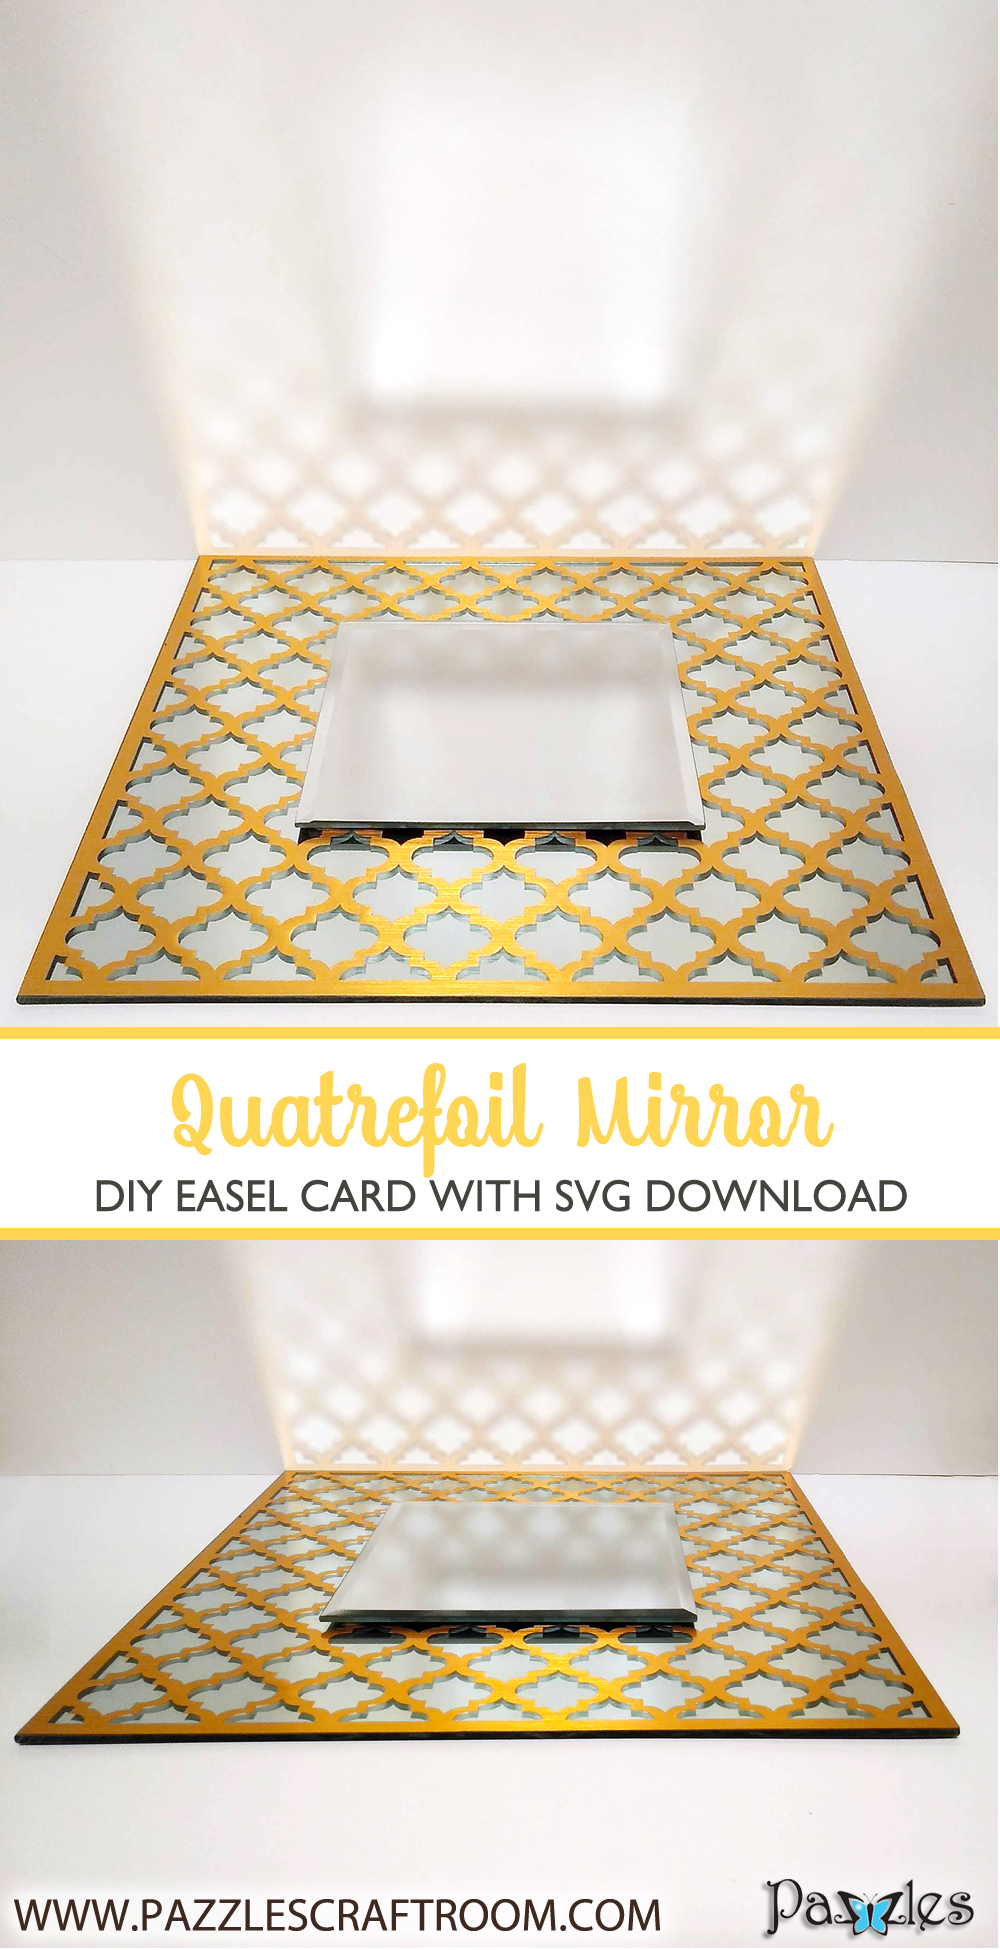 Pazzles DIY Quatrefoil Decorative Mirror with instant SVG download. Compatible with all major electronic cutters including Pazzles Inspiration, Cricut, and Silhouette Cameo. Design by Renee Smart.